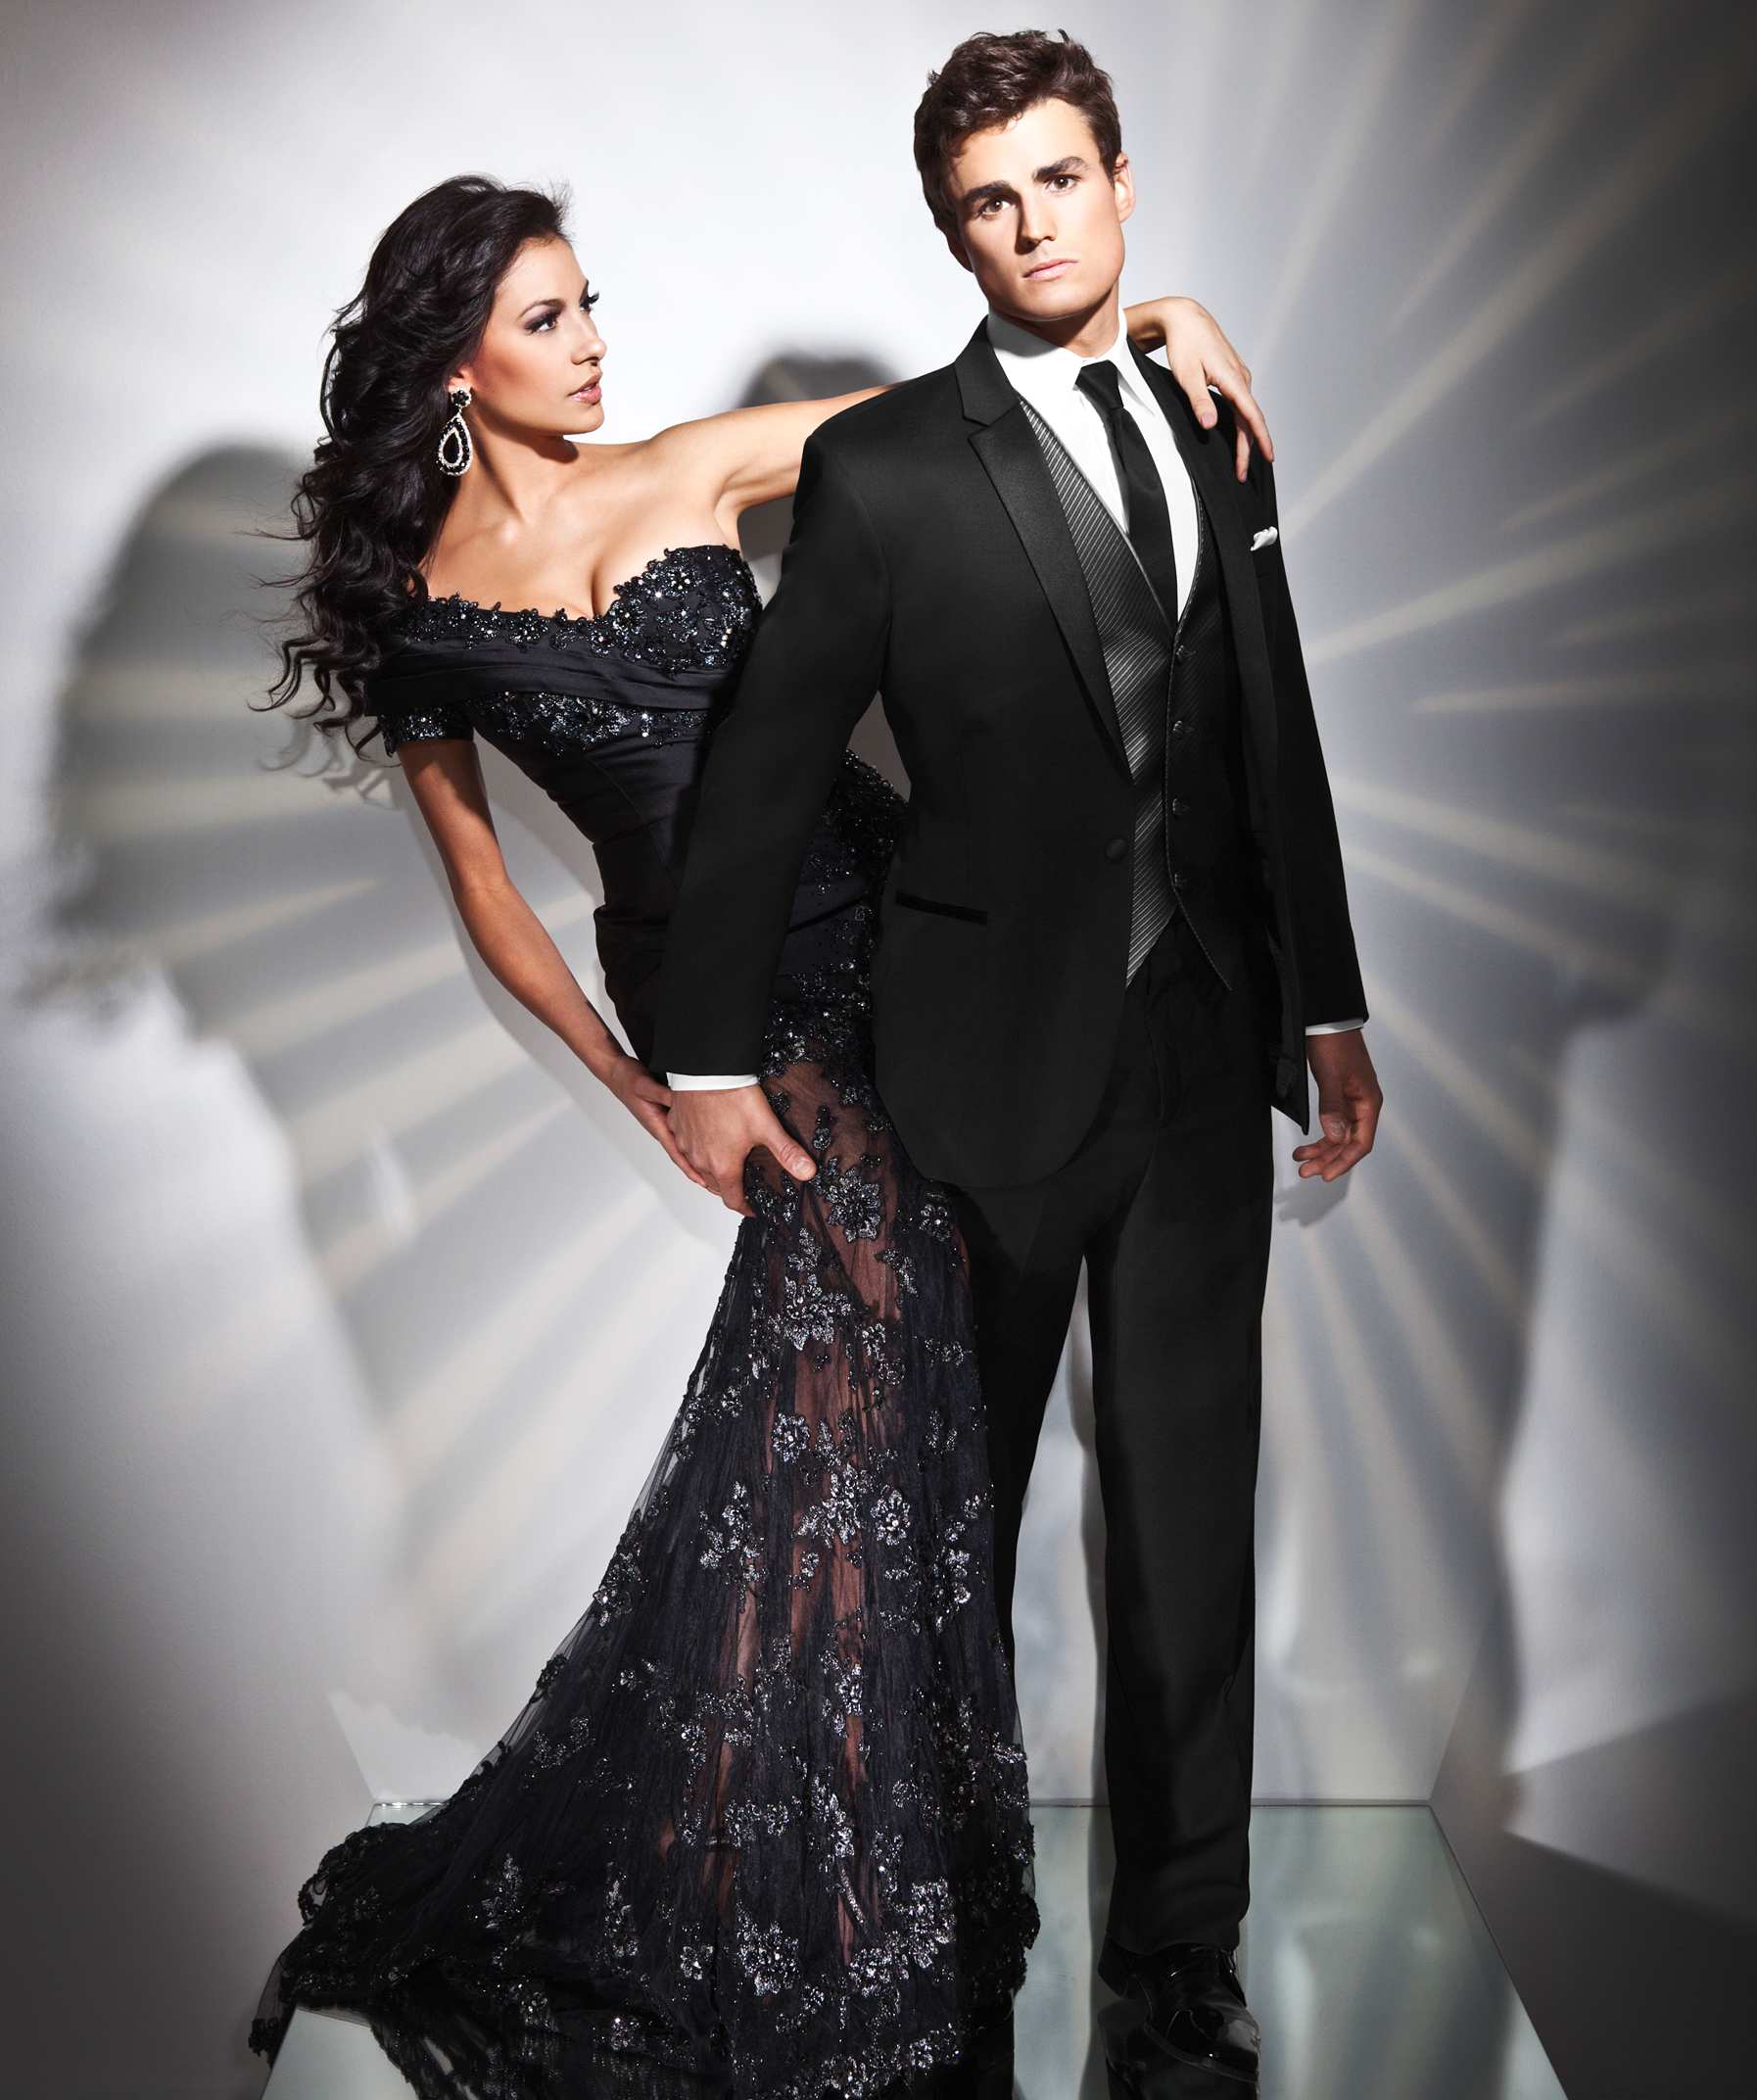 Black Genesis Slim Fit Tuxedo by Tony Bowls